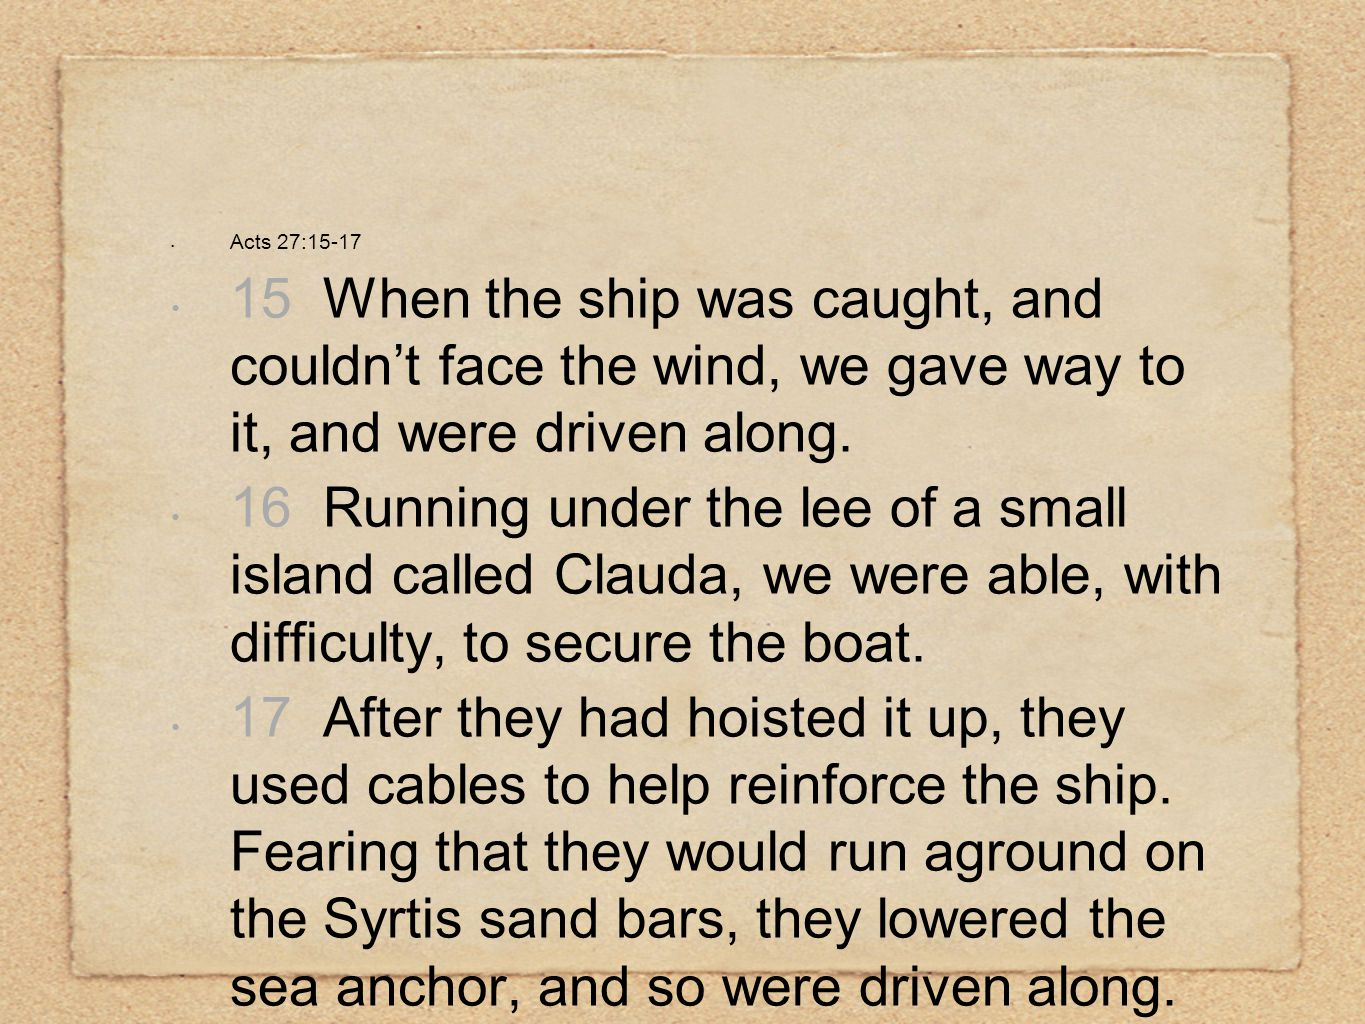 Acts 27:15-17 15 When the ship was caught, and couldn't face the wind, we gave way to it, and were driven along. 16 Running under the lee of a small i